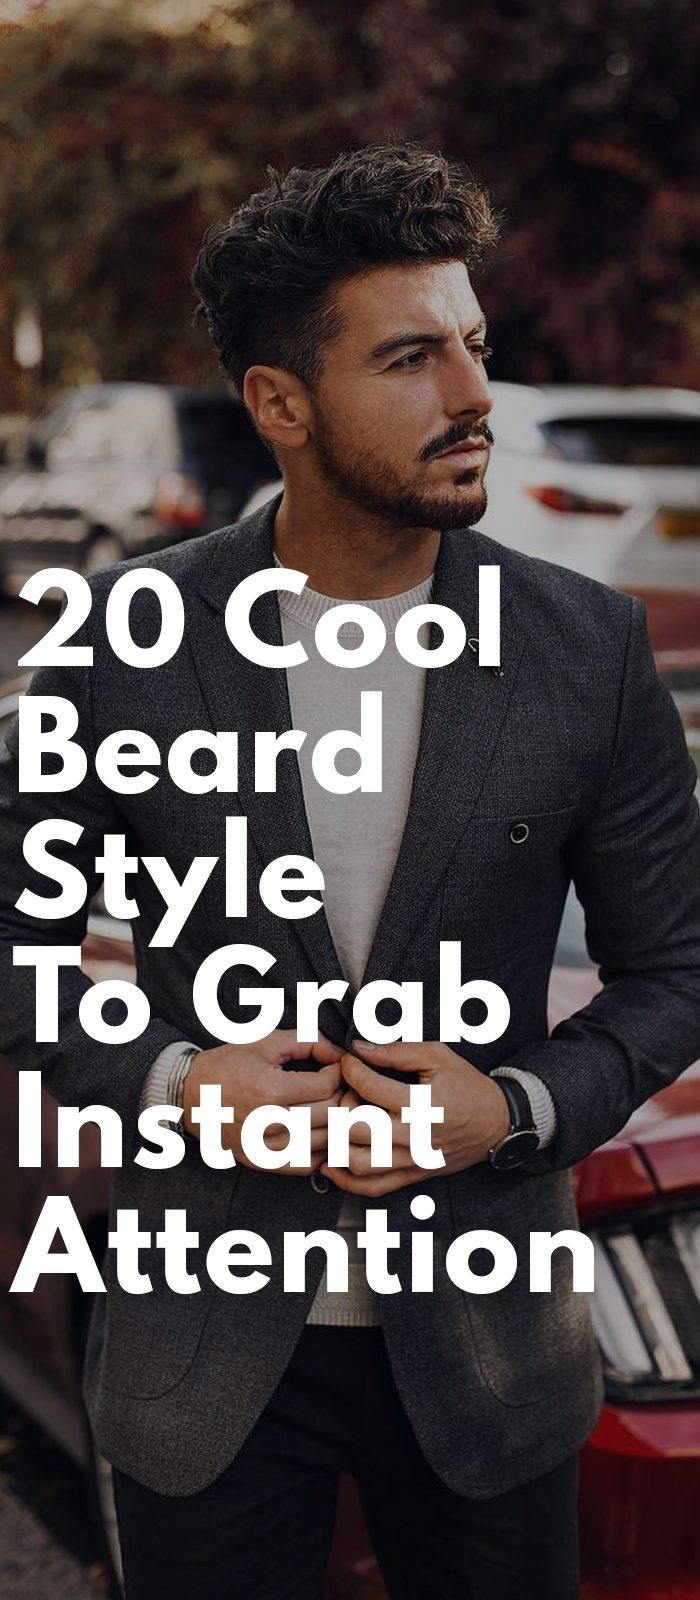 20 Cool Beard Styles To Grab Instant Attention